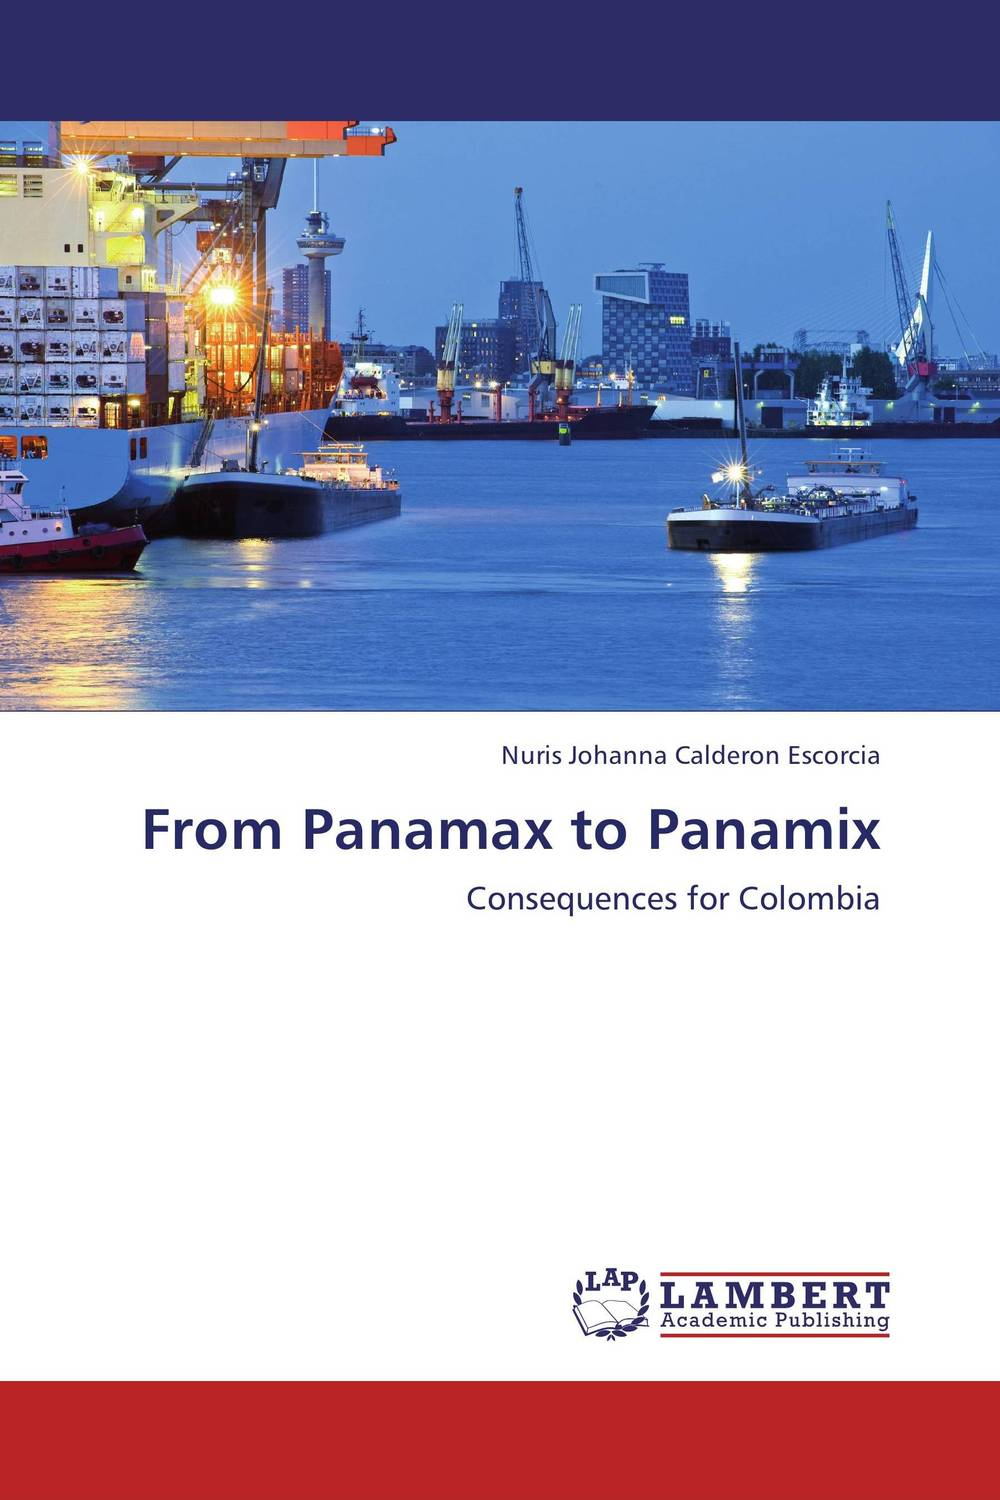 From Panamax to Panamix from panamax to panamix